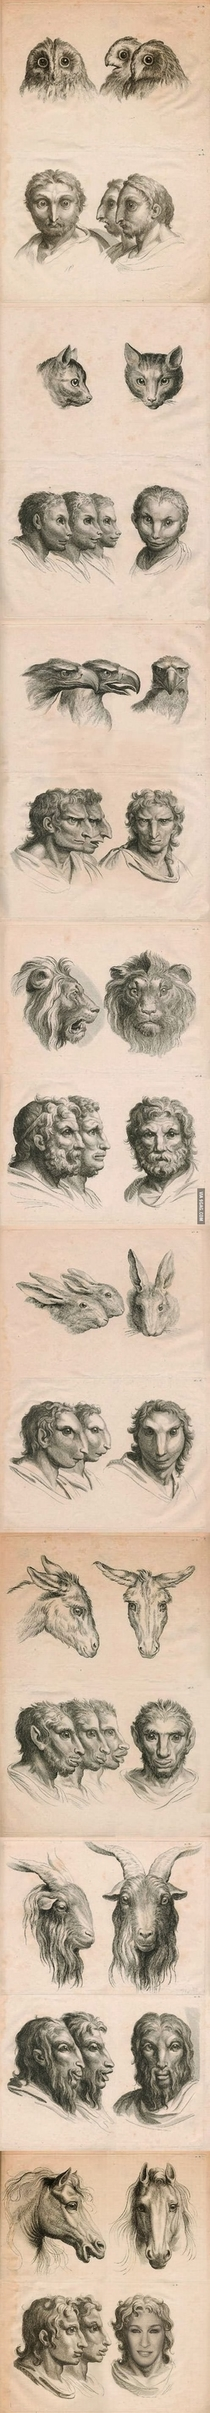 Pencil drawings of what humans would look like if they had evolved from different animal heritages other than apes Interesting work on possible races facial distinctions etc